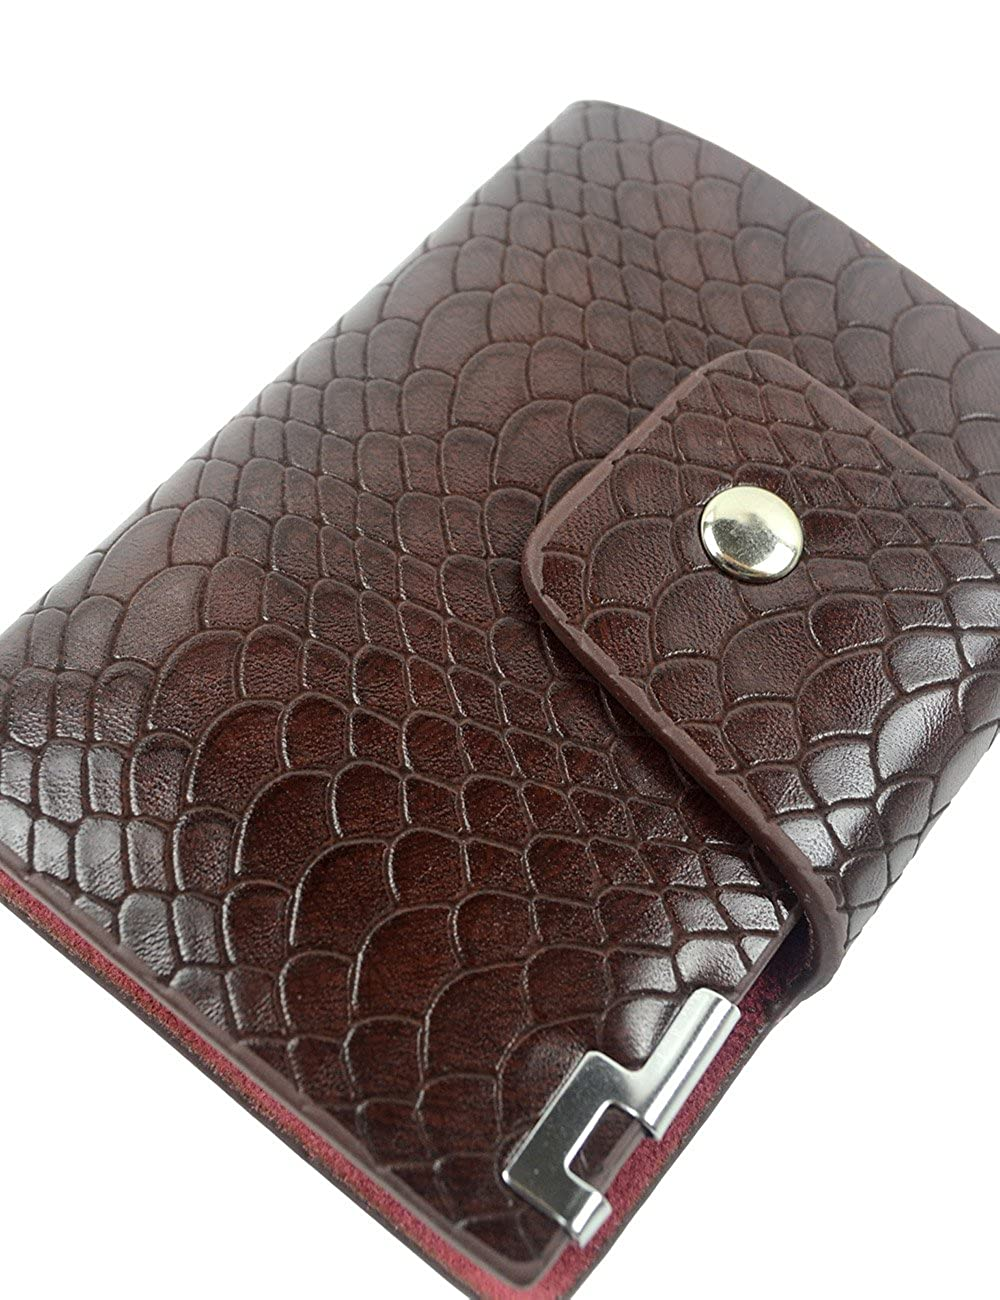 POPUCT Mens Snakeskin Texture Credit Card Holder Business Card Case Purse Wallet with 26 Card Slots